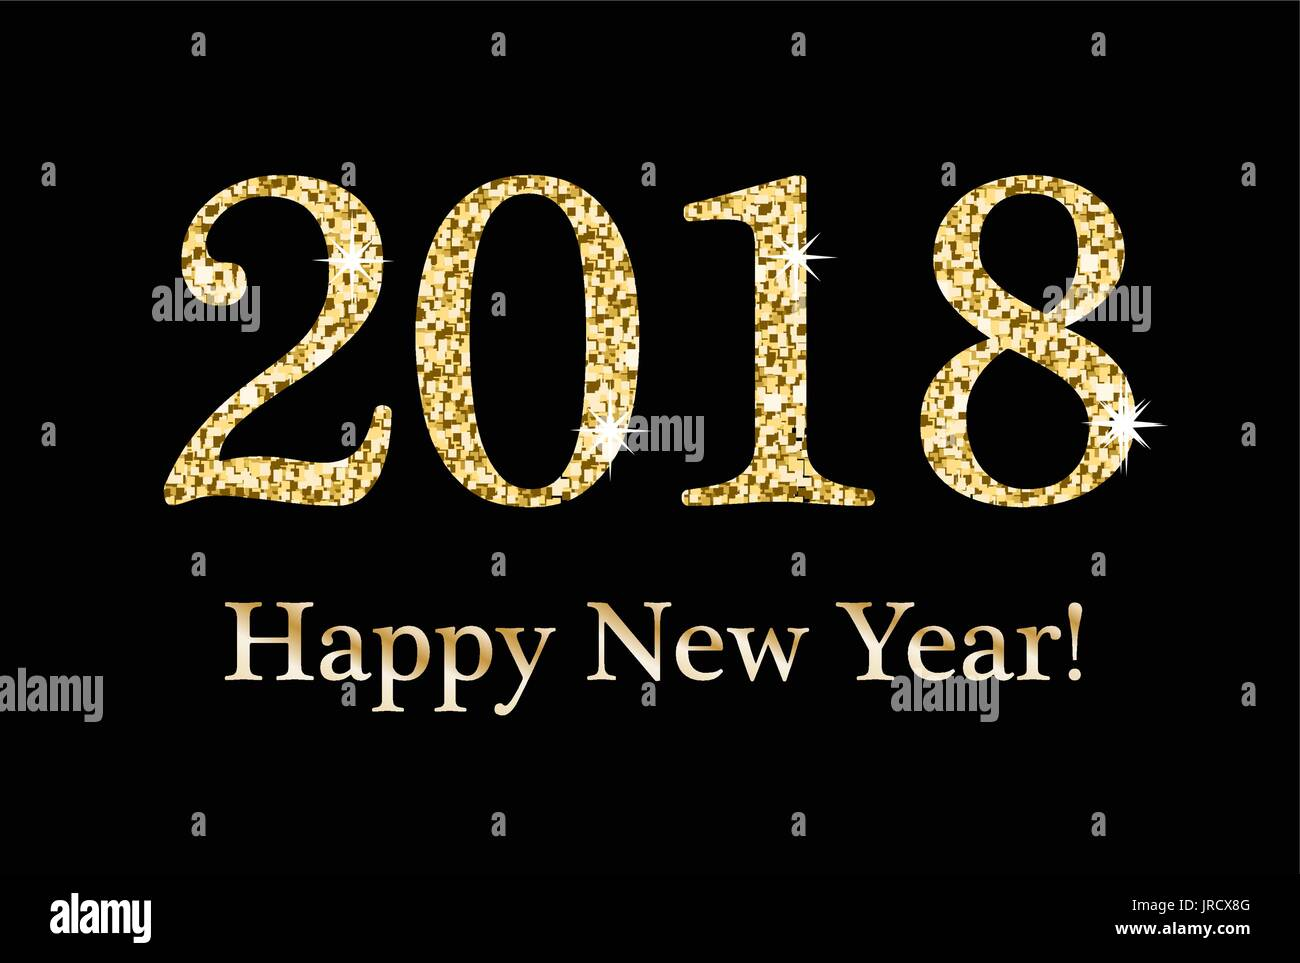 happy new year greeting card template for your design 2018 inscription from a gold glitter sequins sparkling numerals on a black background flye